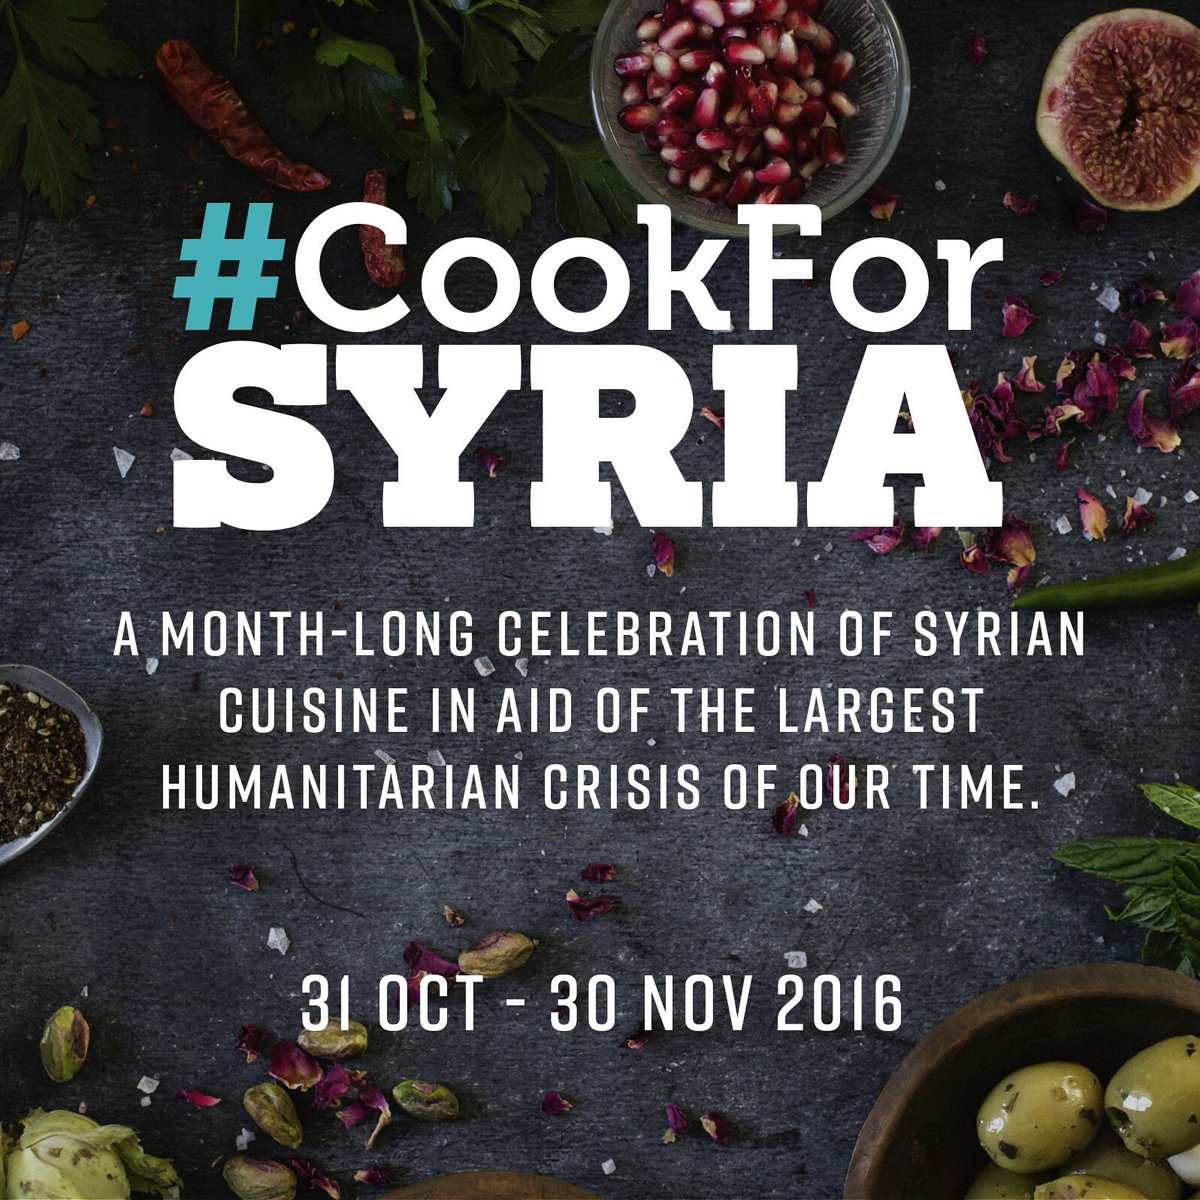 We are supporting #CookForSyria campaign at a Charity Banquet on 31 Oct for @unicef_UK's Children of Syria Fund. https://t.co/K6eAX20VNT